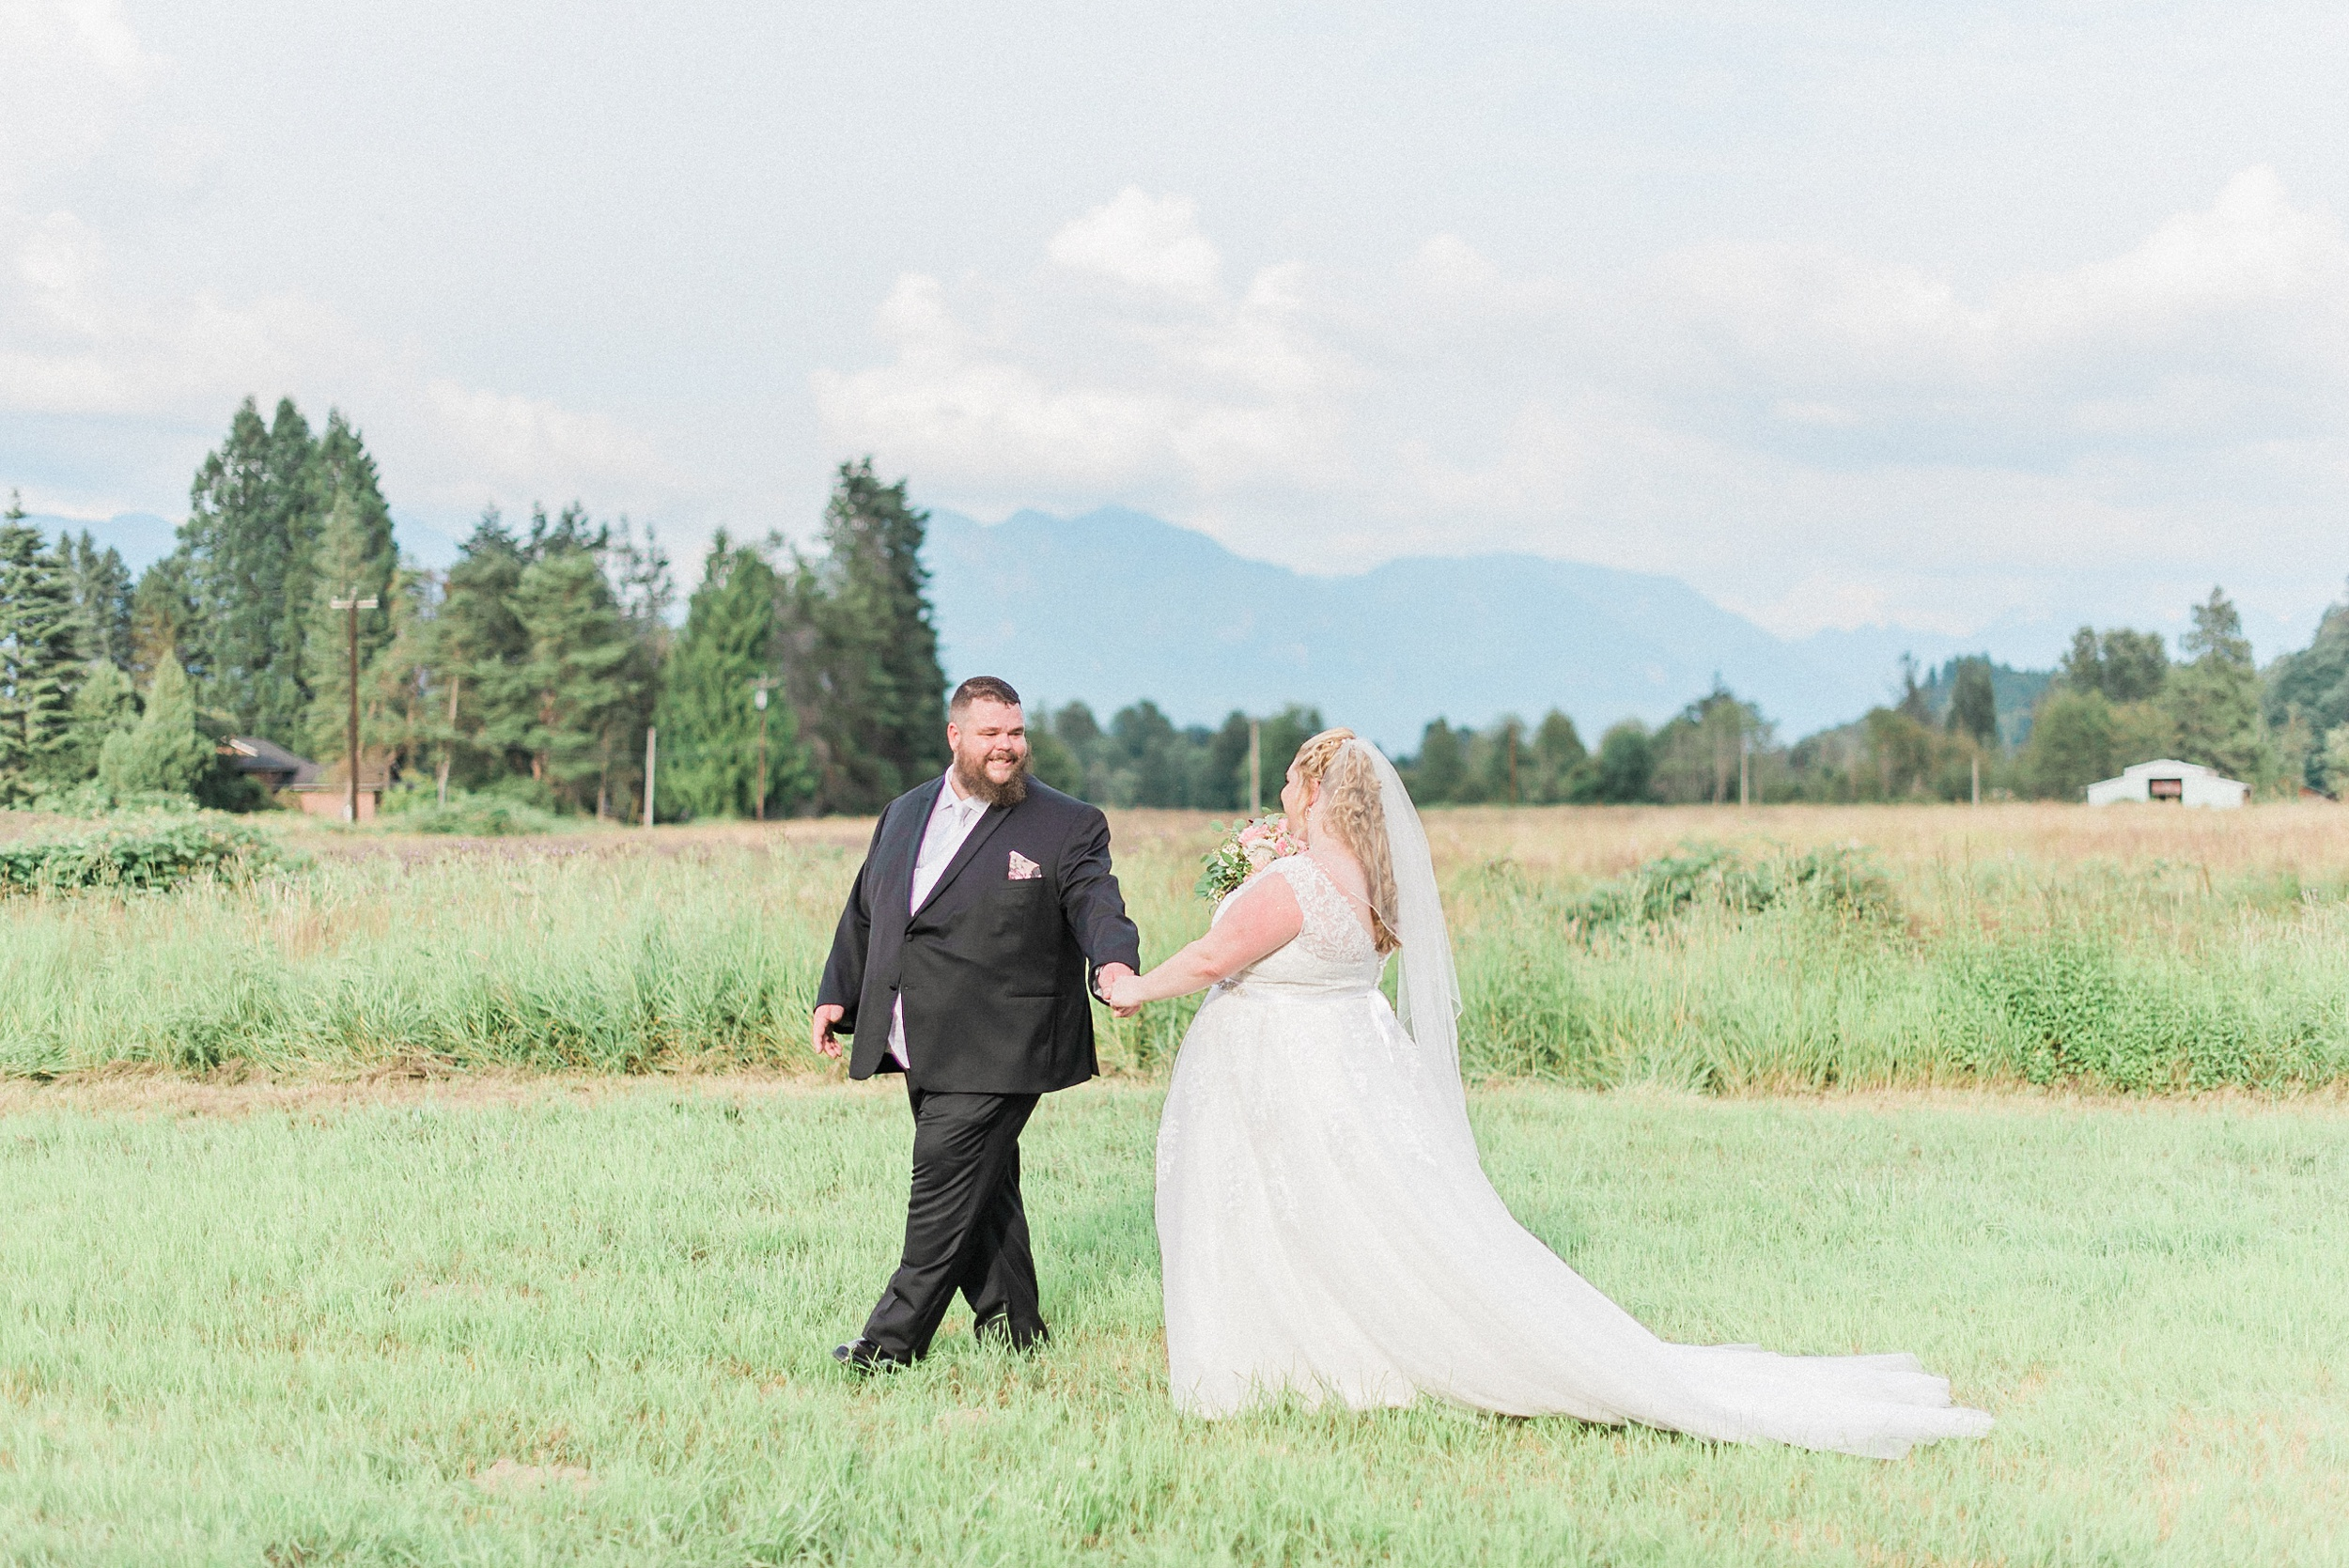 Rustic PNW backyard wedding - seattle wedding photographer